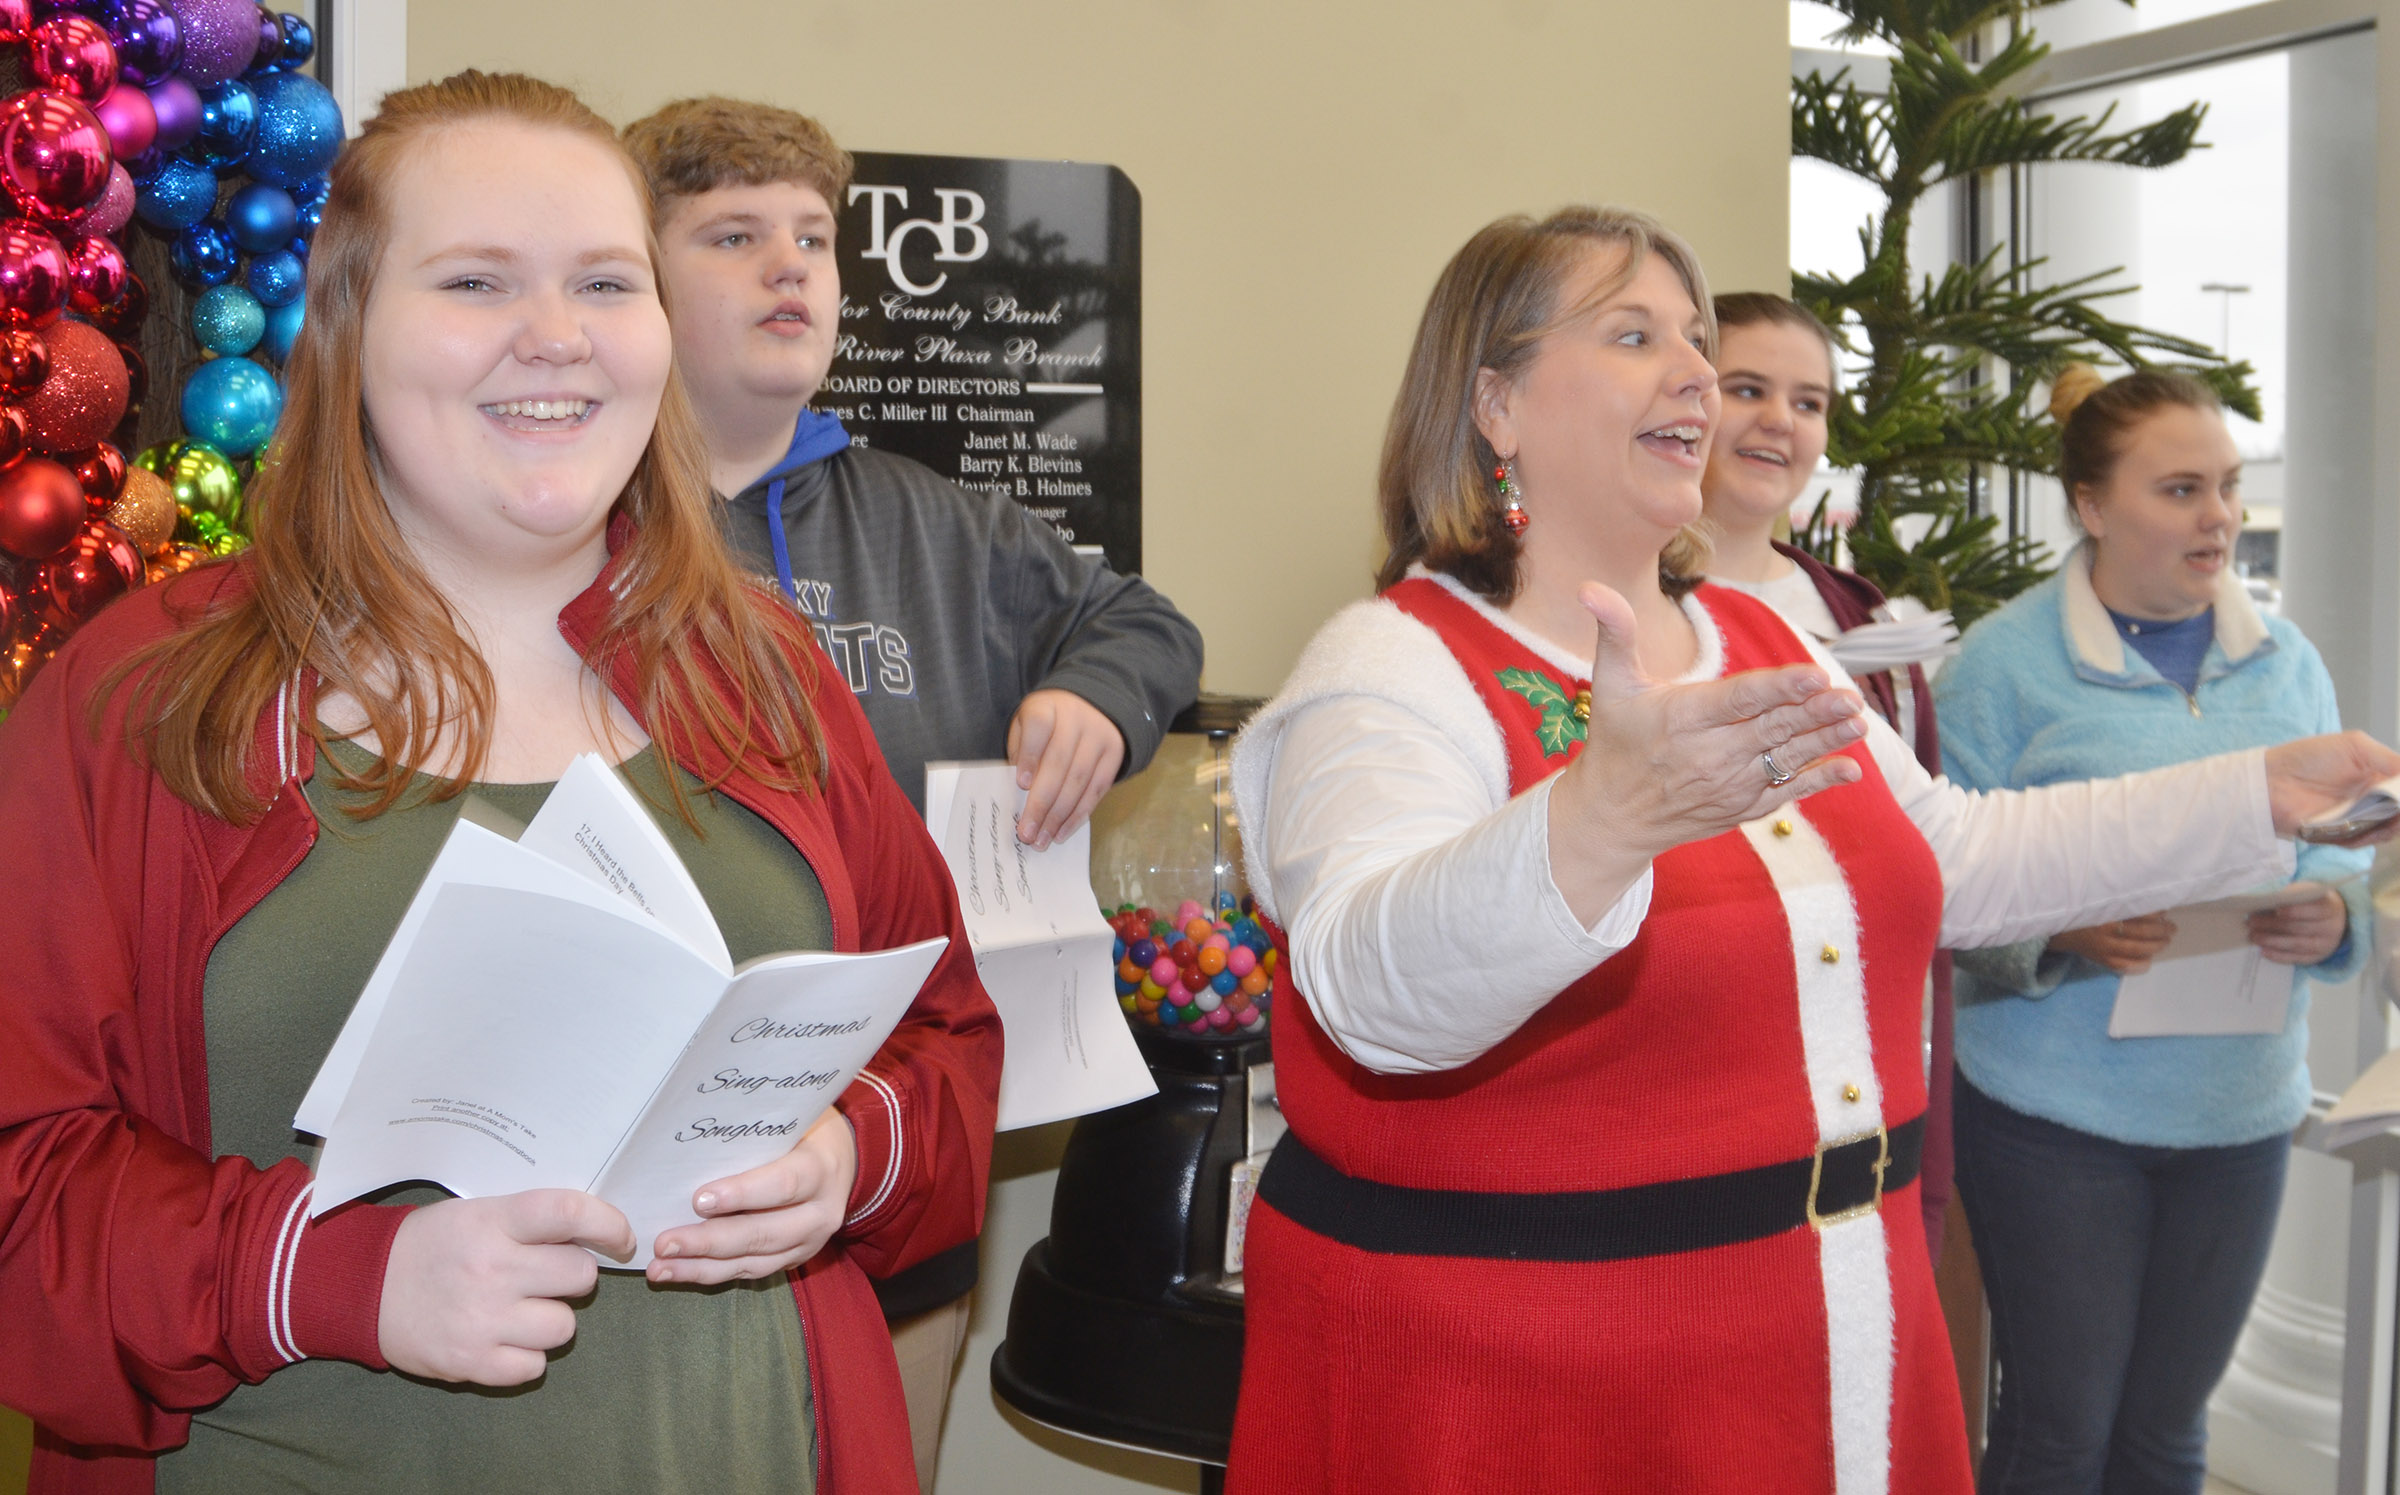 CHS choir members sing Christmas carols at Taylor County Bank. From left, front, are freshman Trinity Lobb and music teacher Cyndi Chadwick. Back, freshman Noah Mardis and seniors Vivian Brown and Haley Fitch.